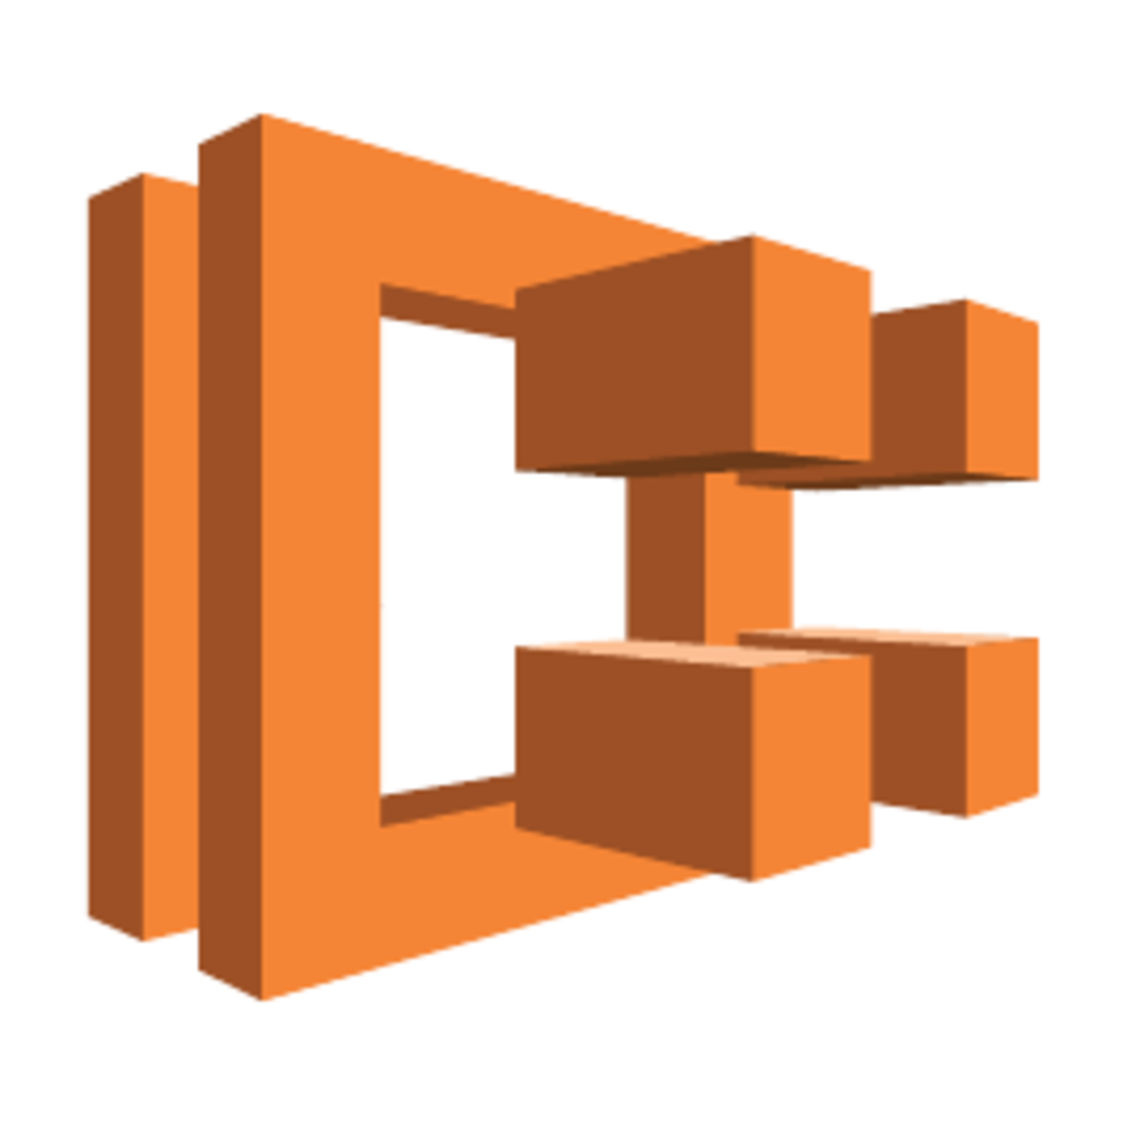 ECS container instance scaling the proper way